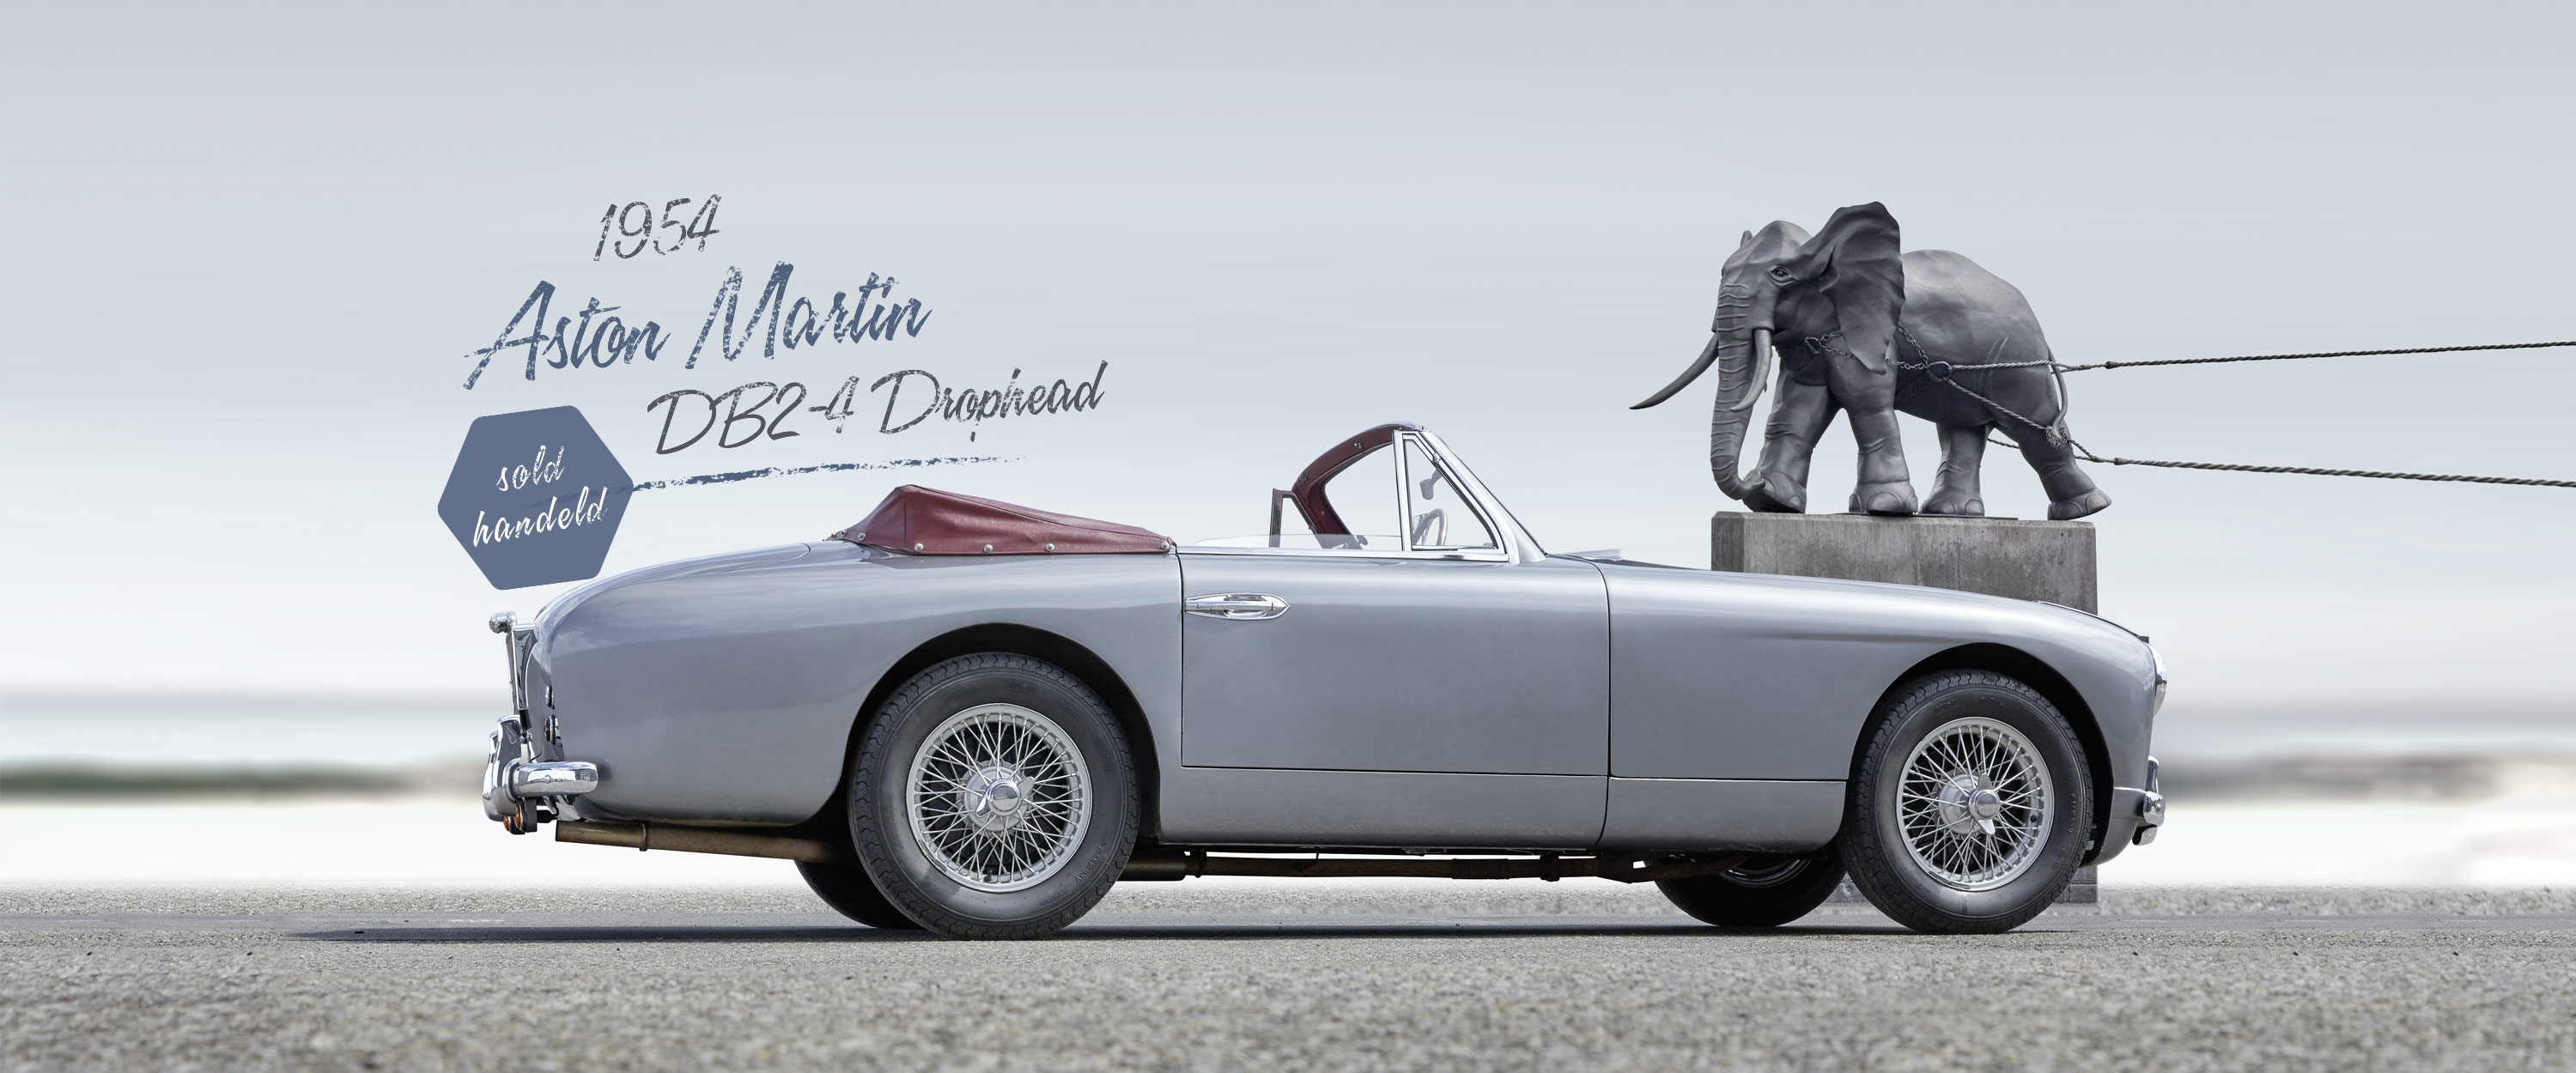 web_Header_Aston-Martin_E